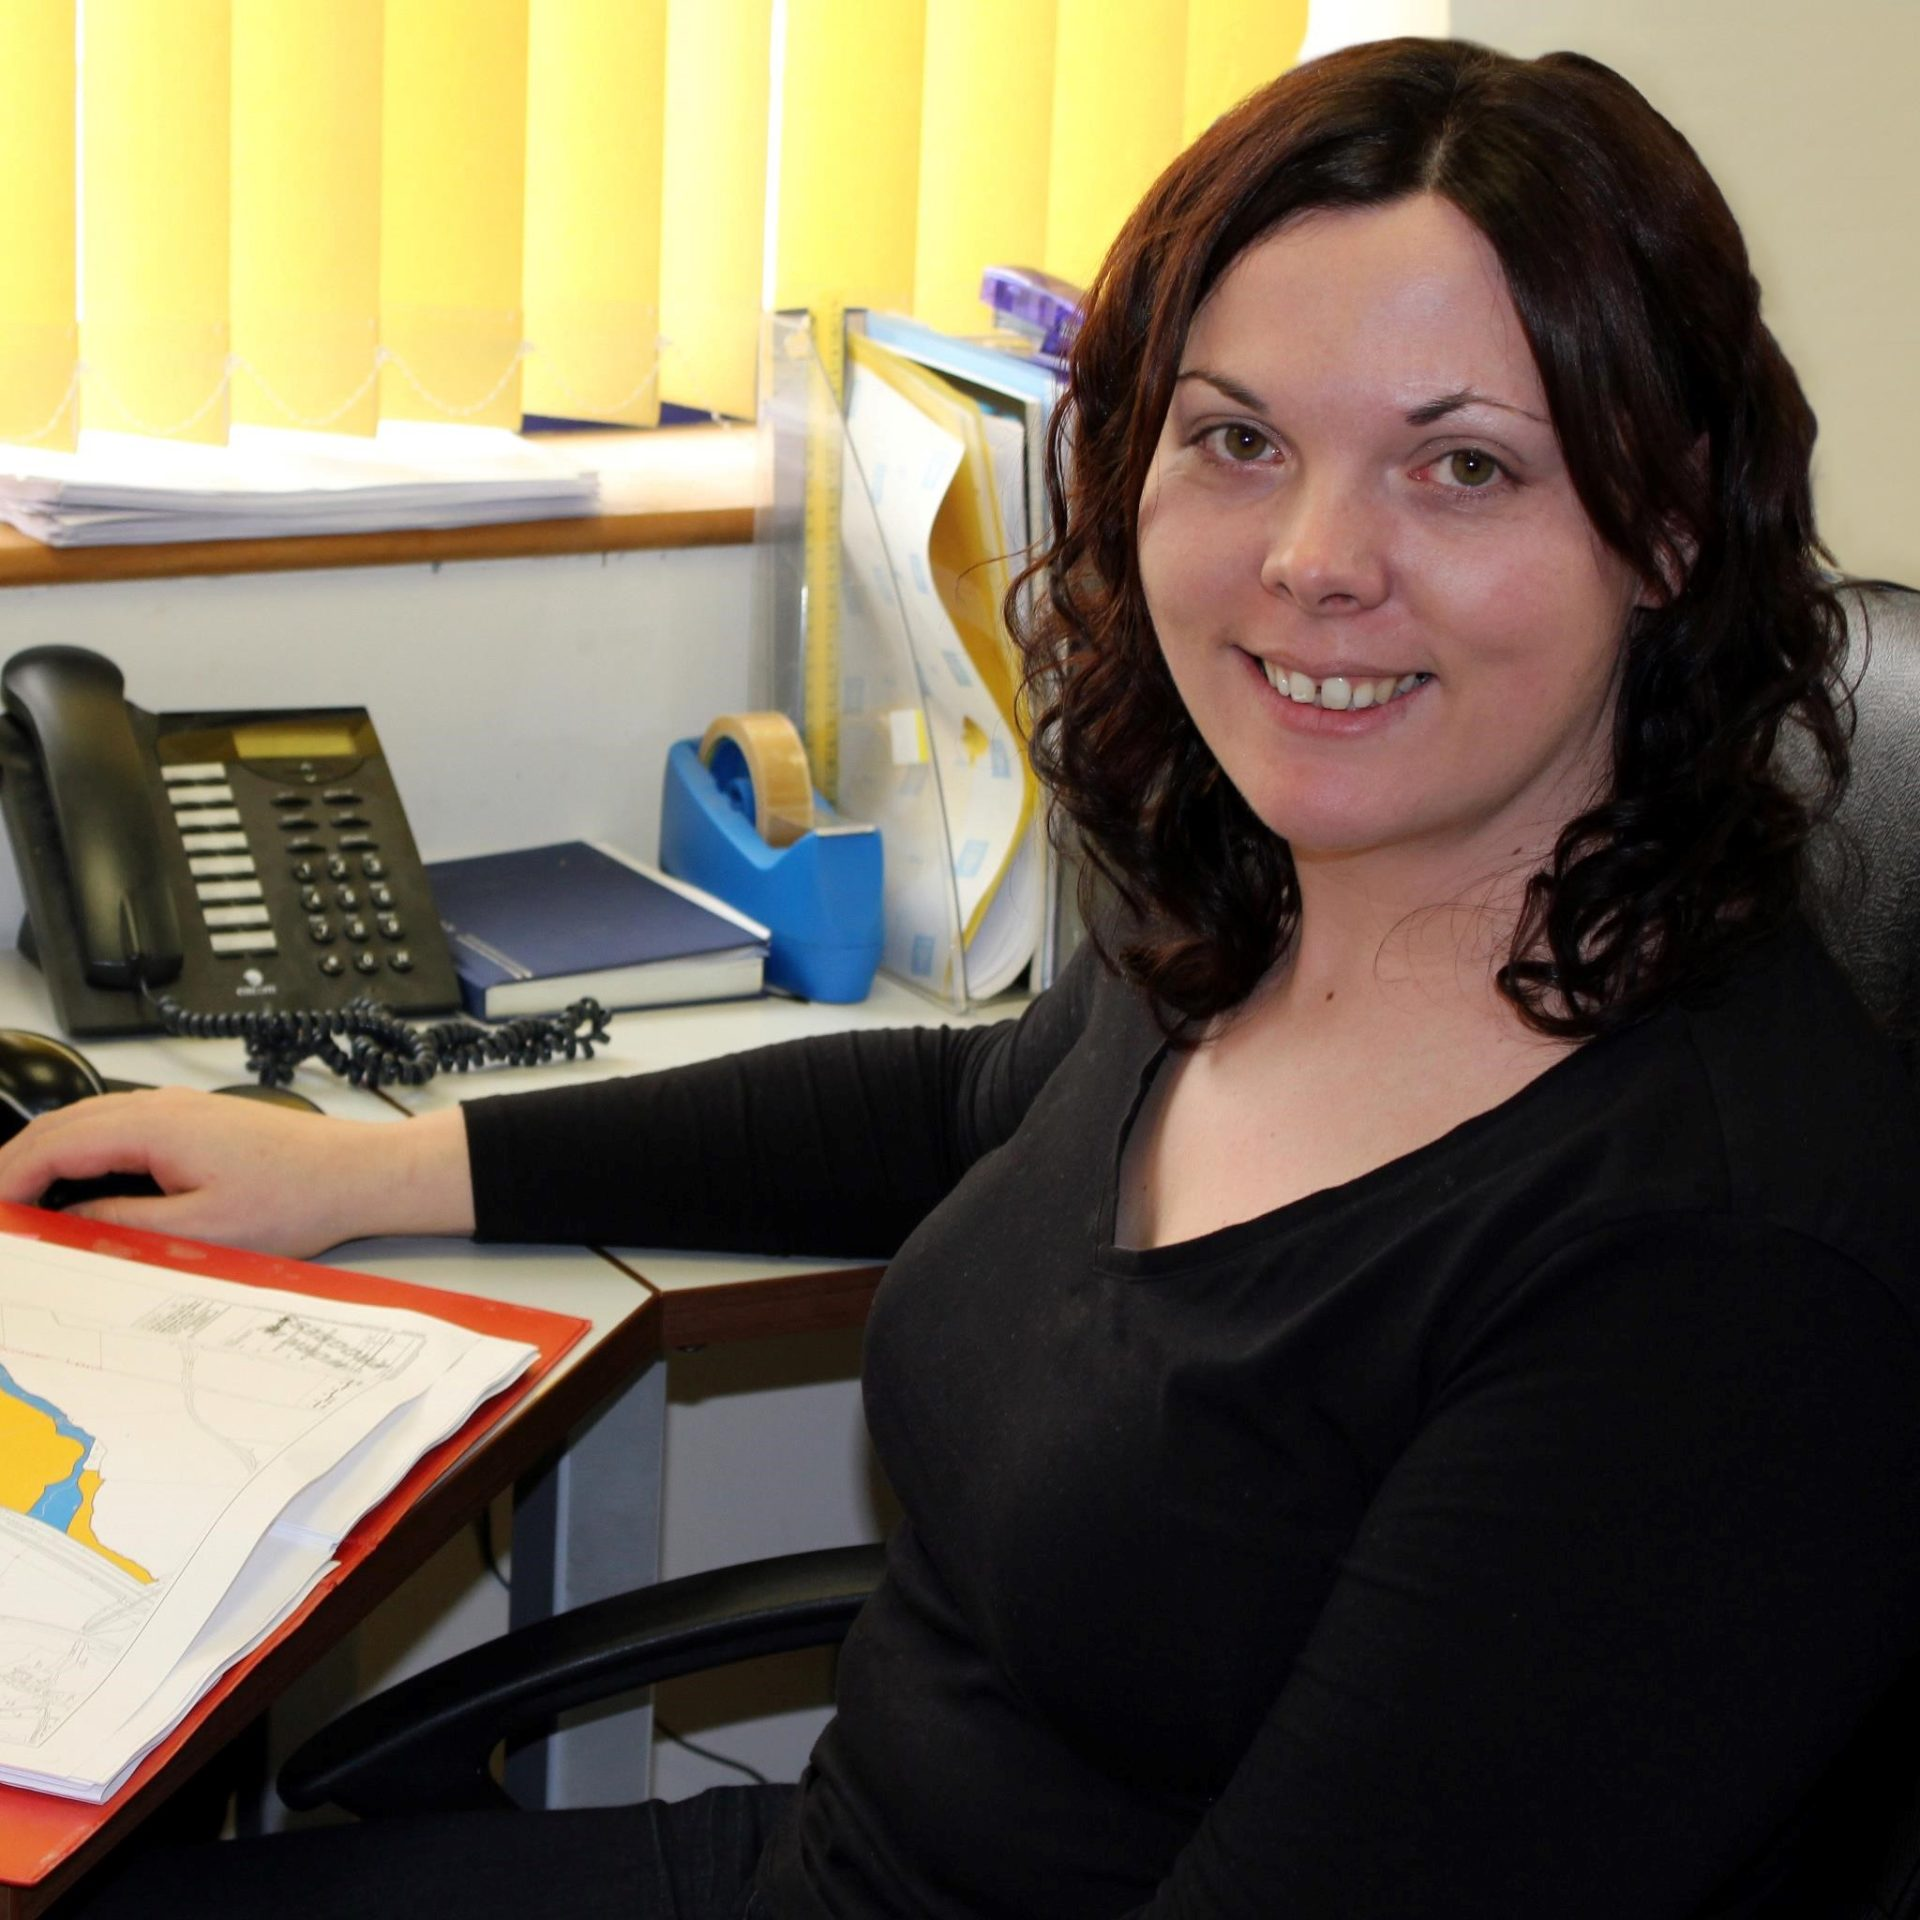 Rubicon Heritage Services Ltd is delighted to announce the appointment of Trish Long as Managing Director